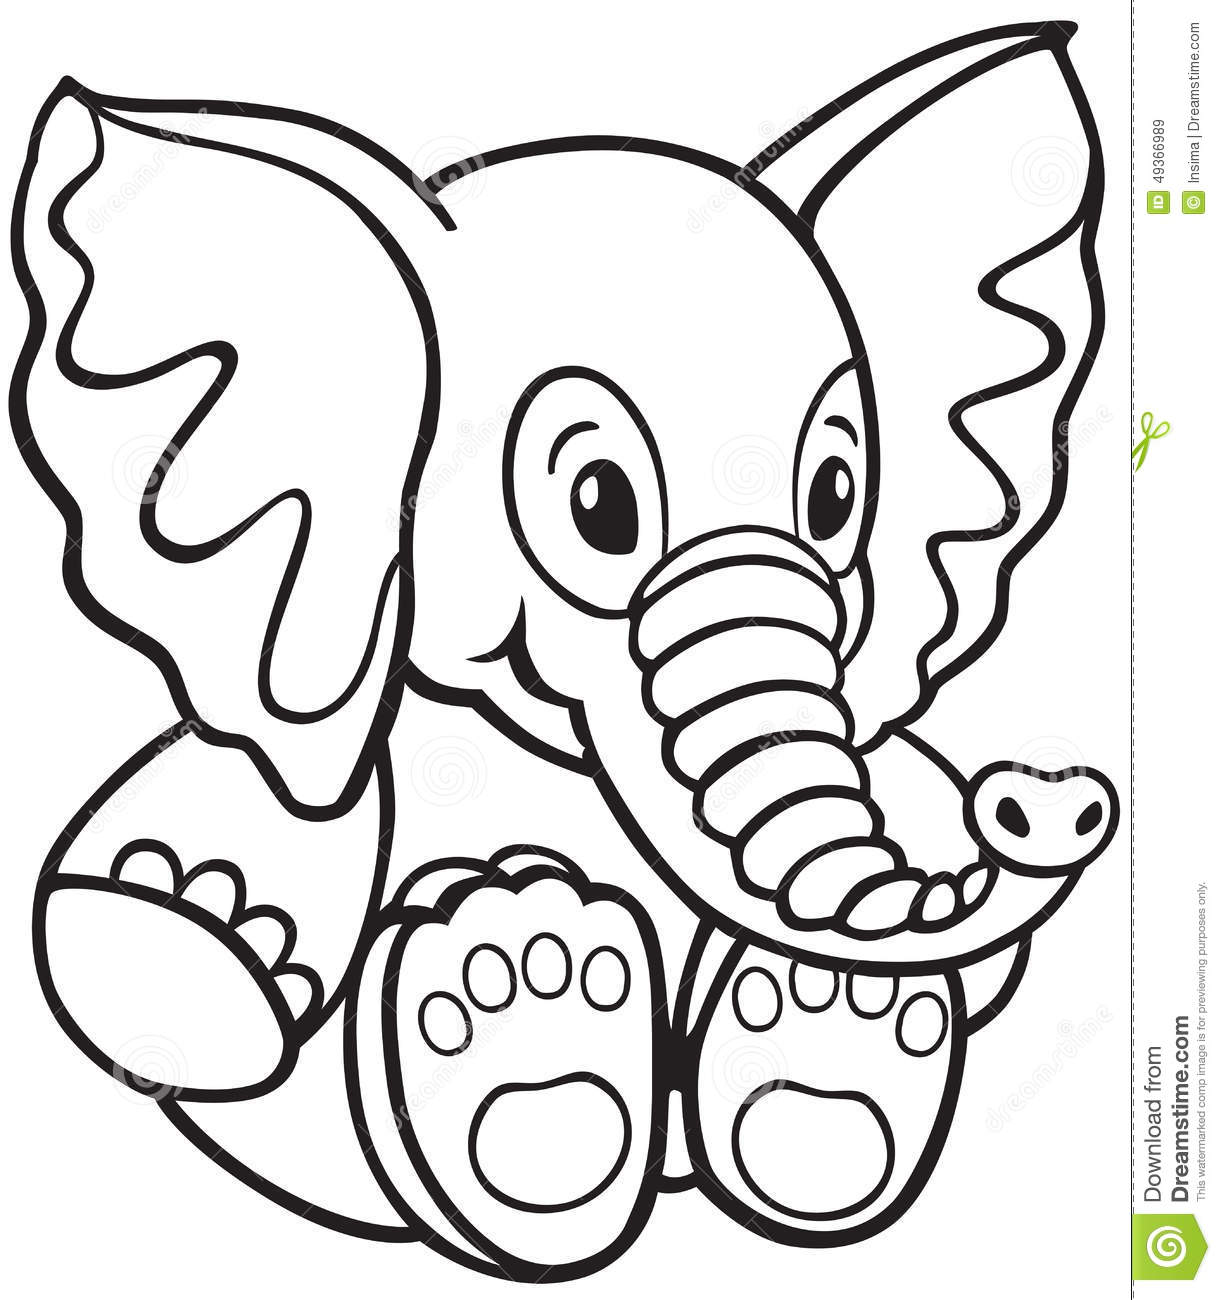 Toddler Toys Black And White : Elephant toy stock vector image of white black